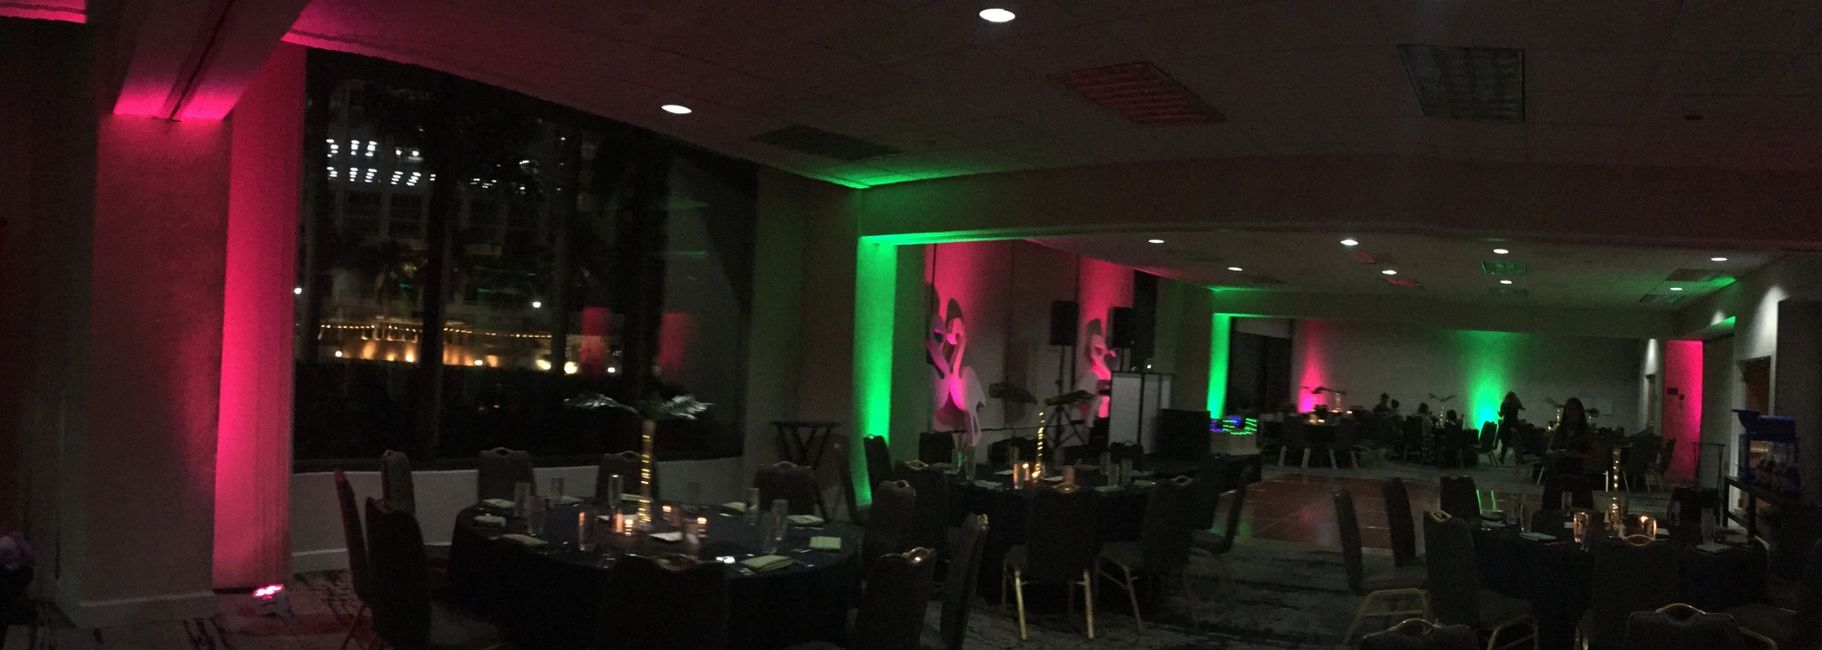 Wedding Uplighting will transform the atmosphere of any place or venue